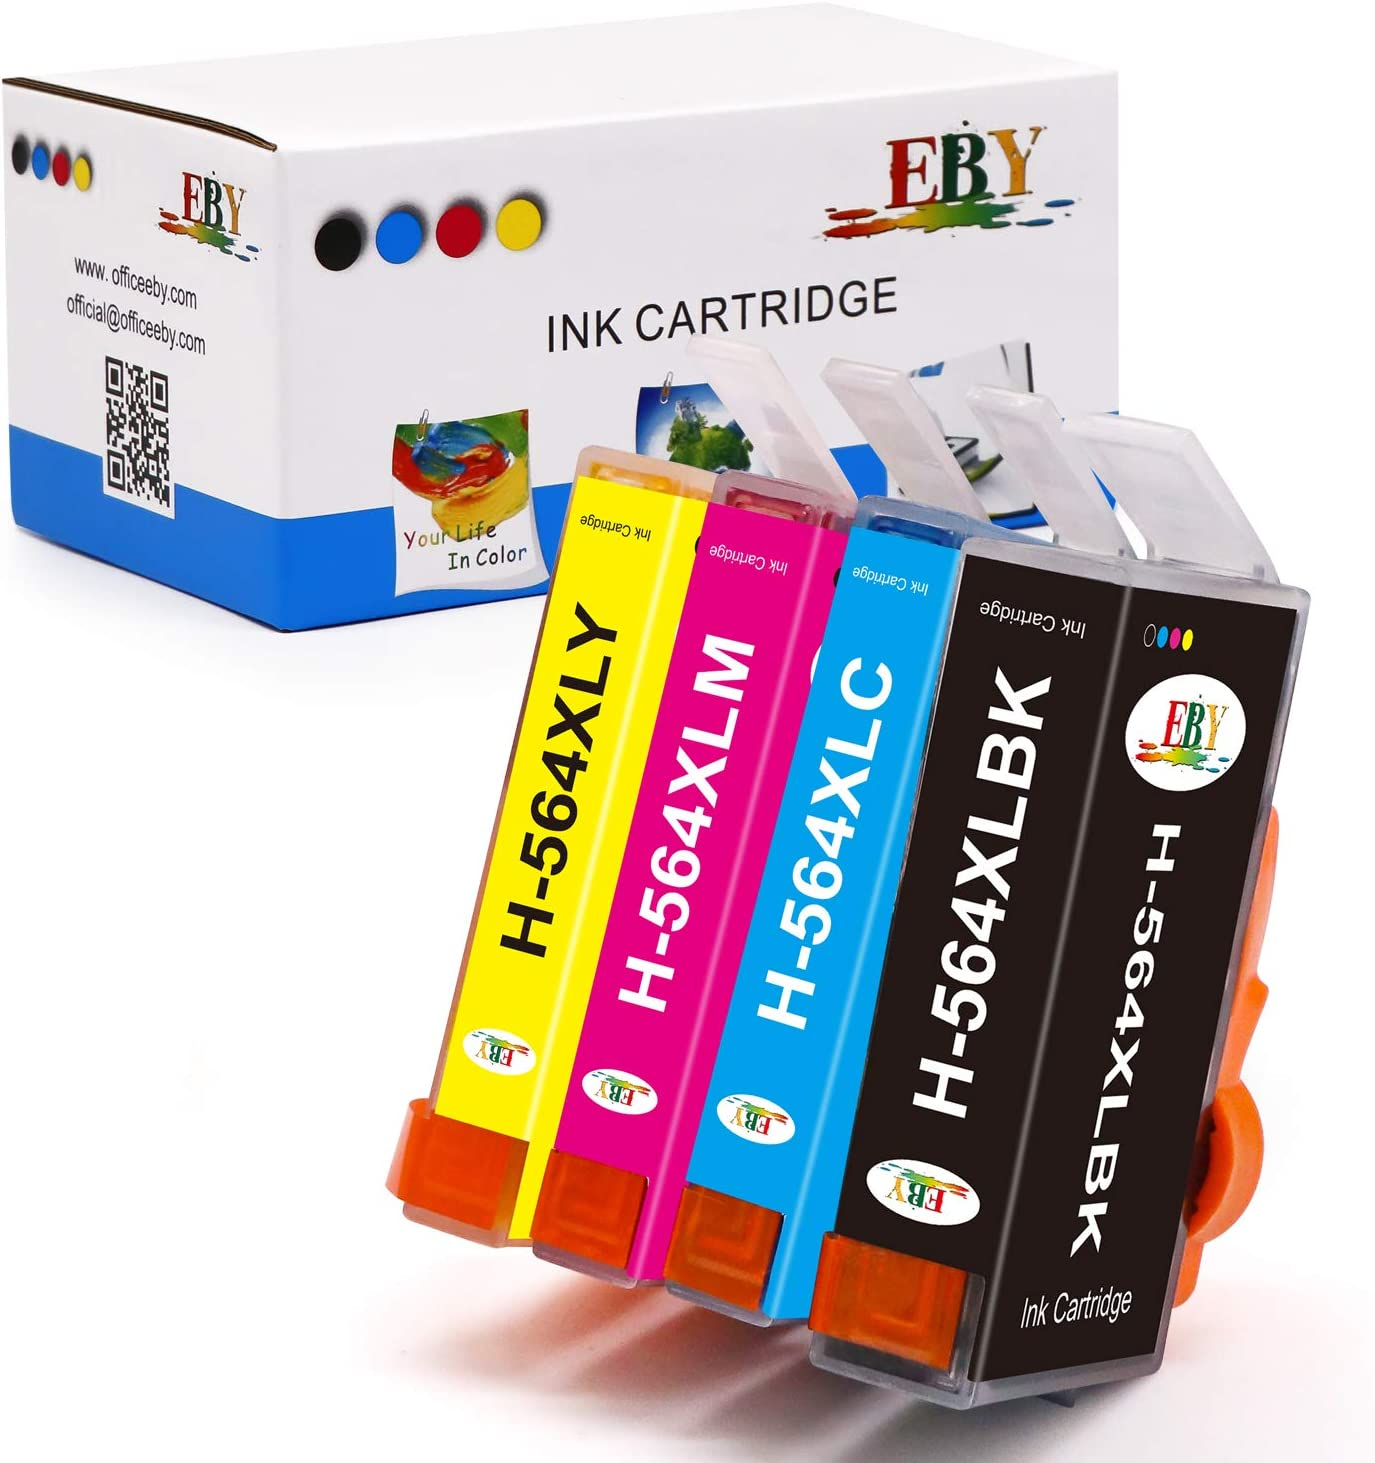 EBY Compatible Ink Cartridge Replacement for HP 564XL 564 XL for Deskjet 3520 3522 3521 Officejet 4620 4620 Photosmart 7520 6520 5520 7525 6525 5525 5510 6510 7510 (Black,Cyan,Magenta,Yellow, 4-Pack)